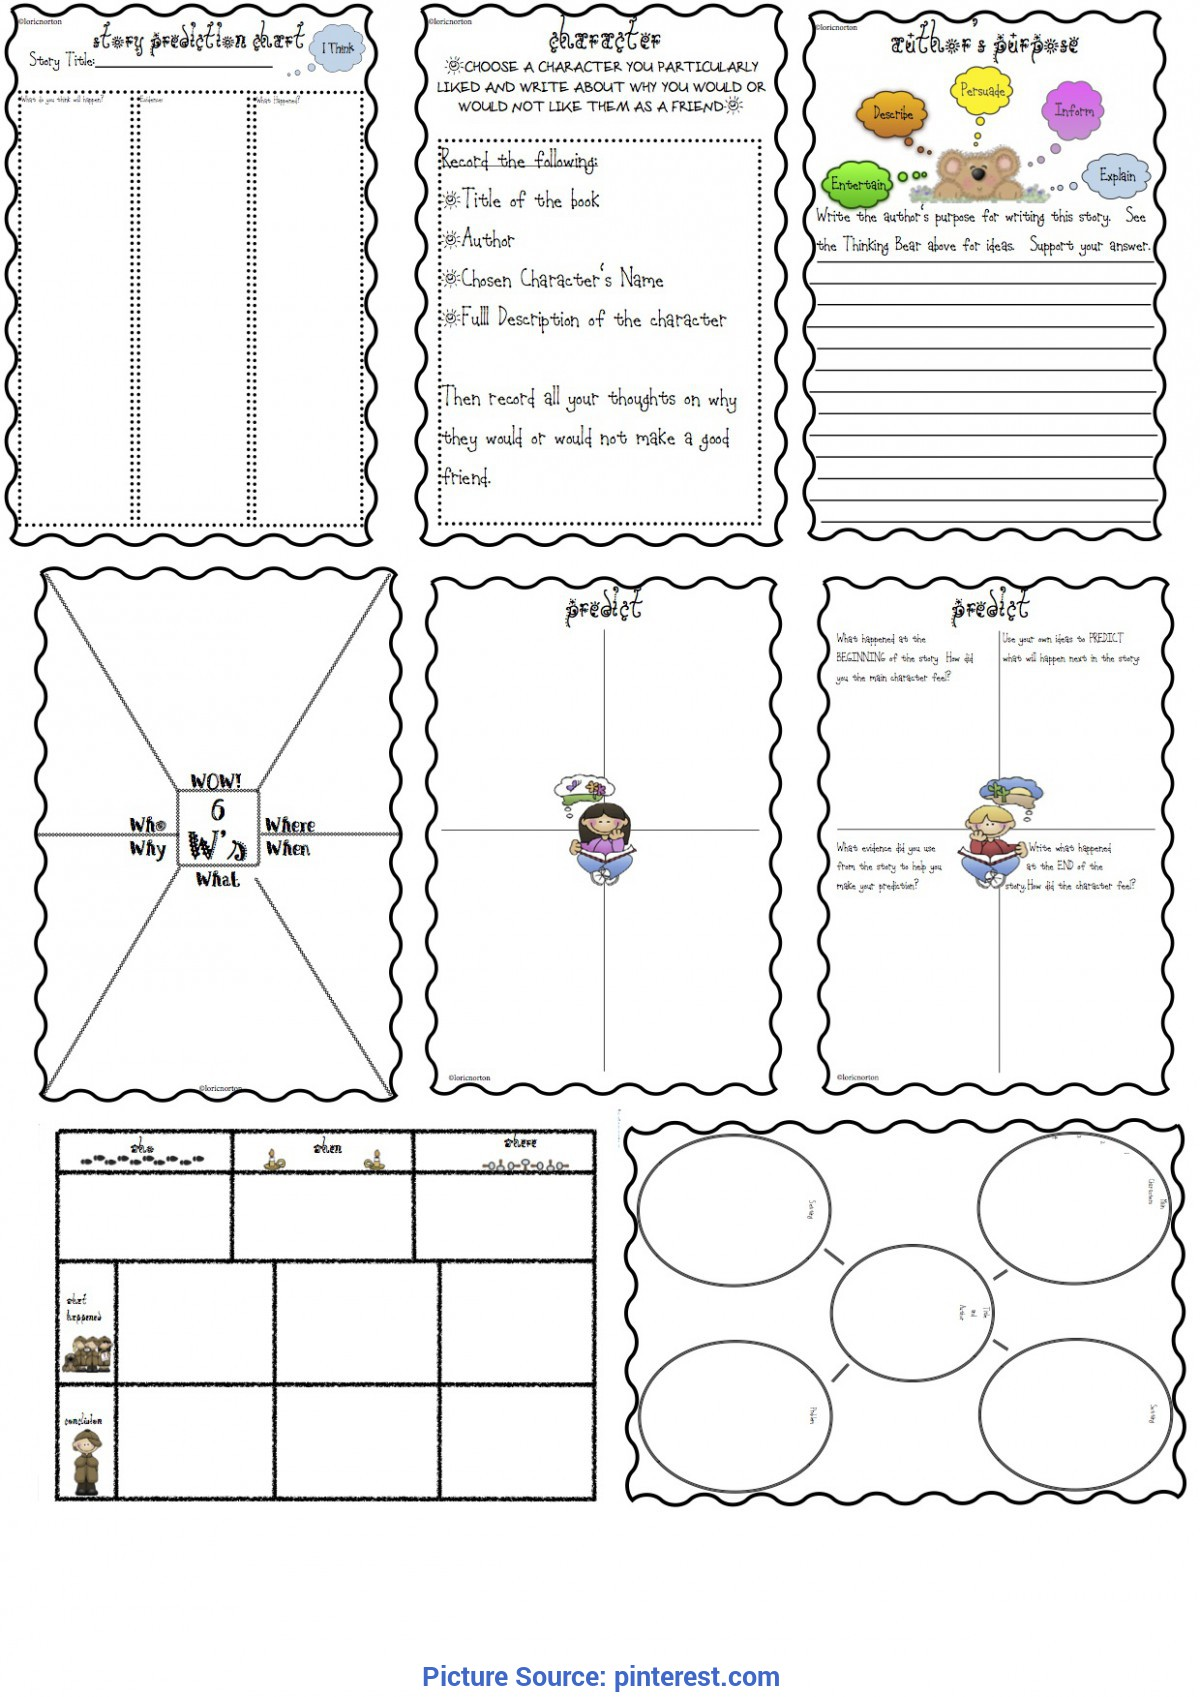 Good Pre K Lesson Plans On Music And Movement Letter M